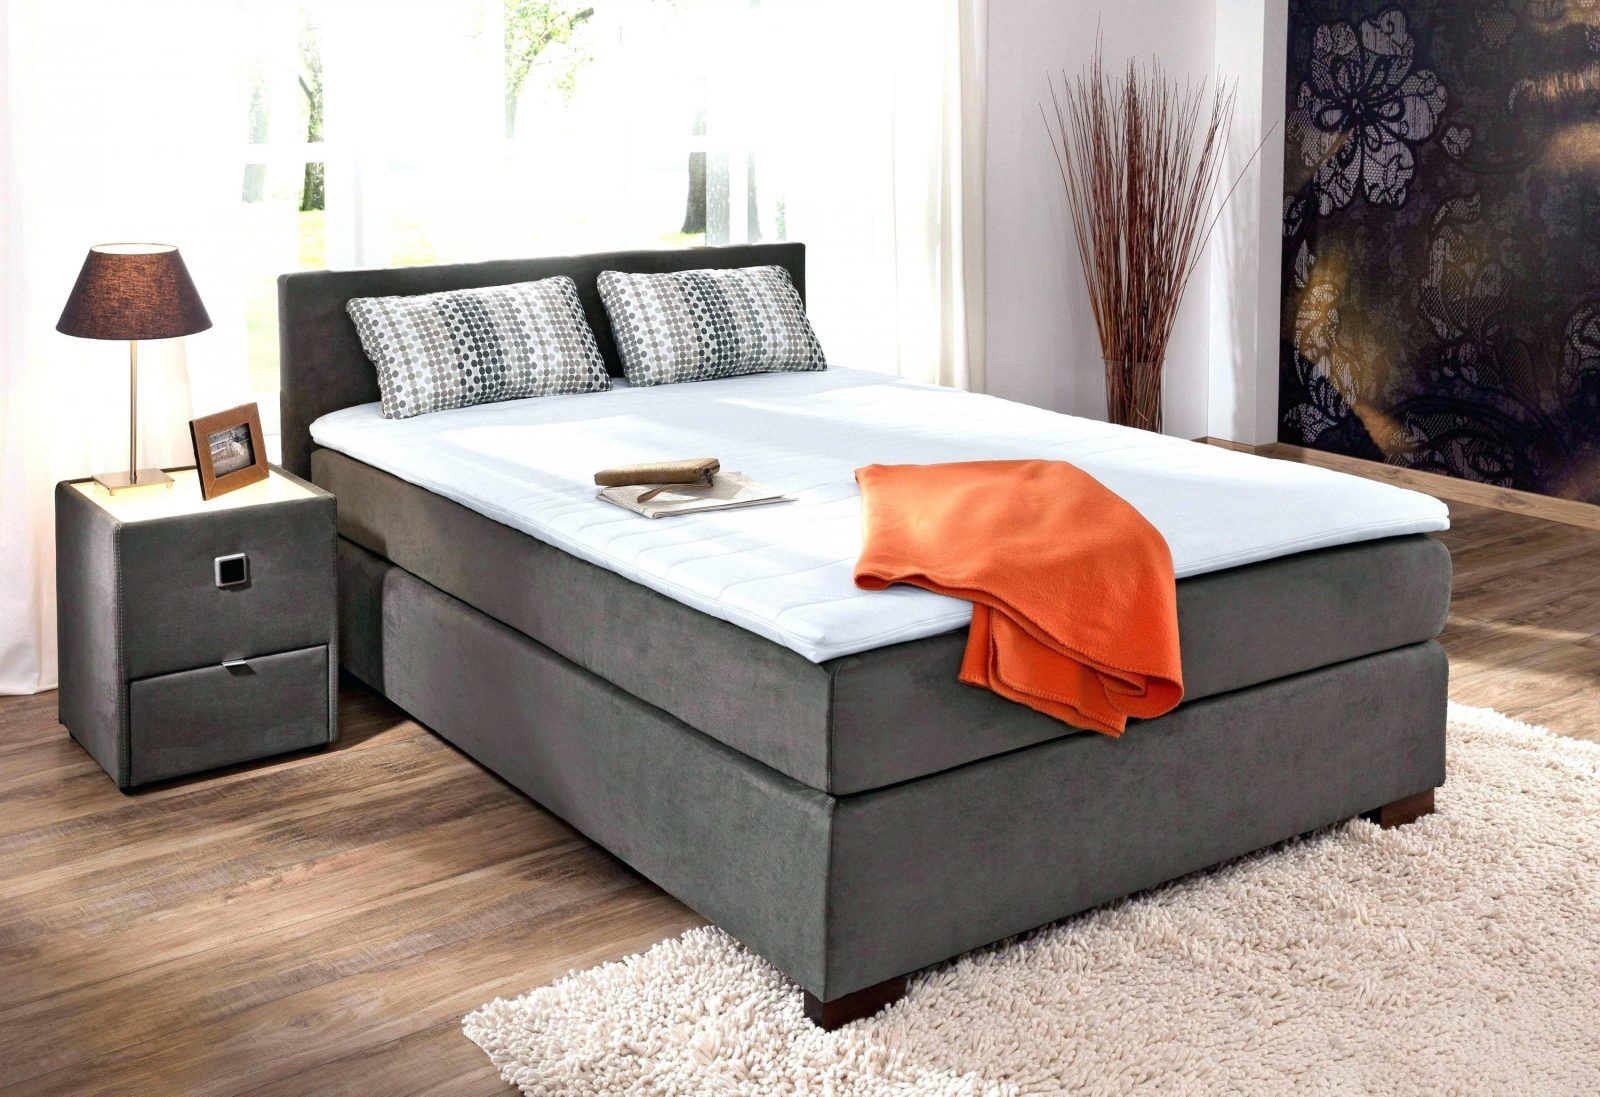 das boxspringbett von bruno 2016 youtube von bugatti gold boxspringbett bild haus design ideen. Black Bedroom Furniture Sets. Home Design Ideas